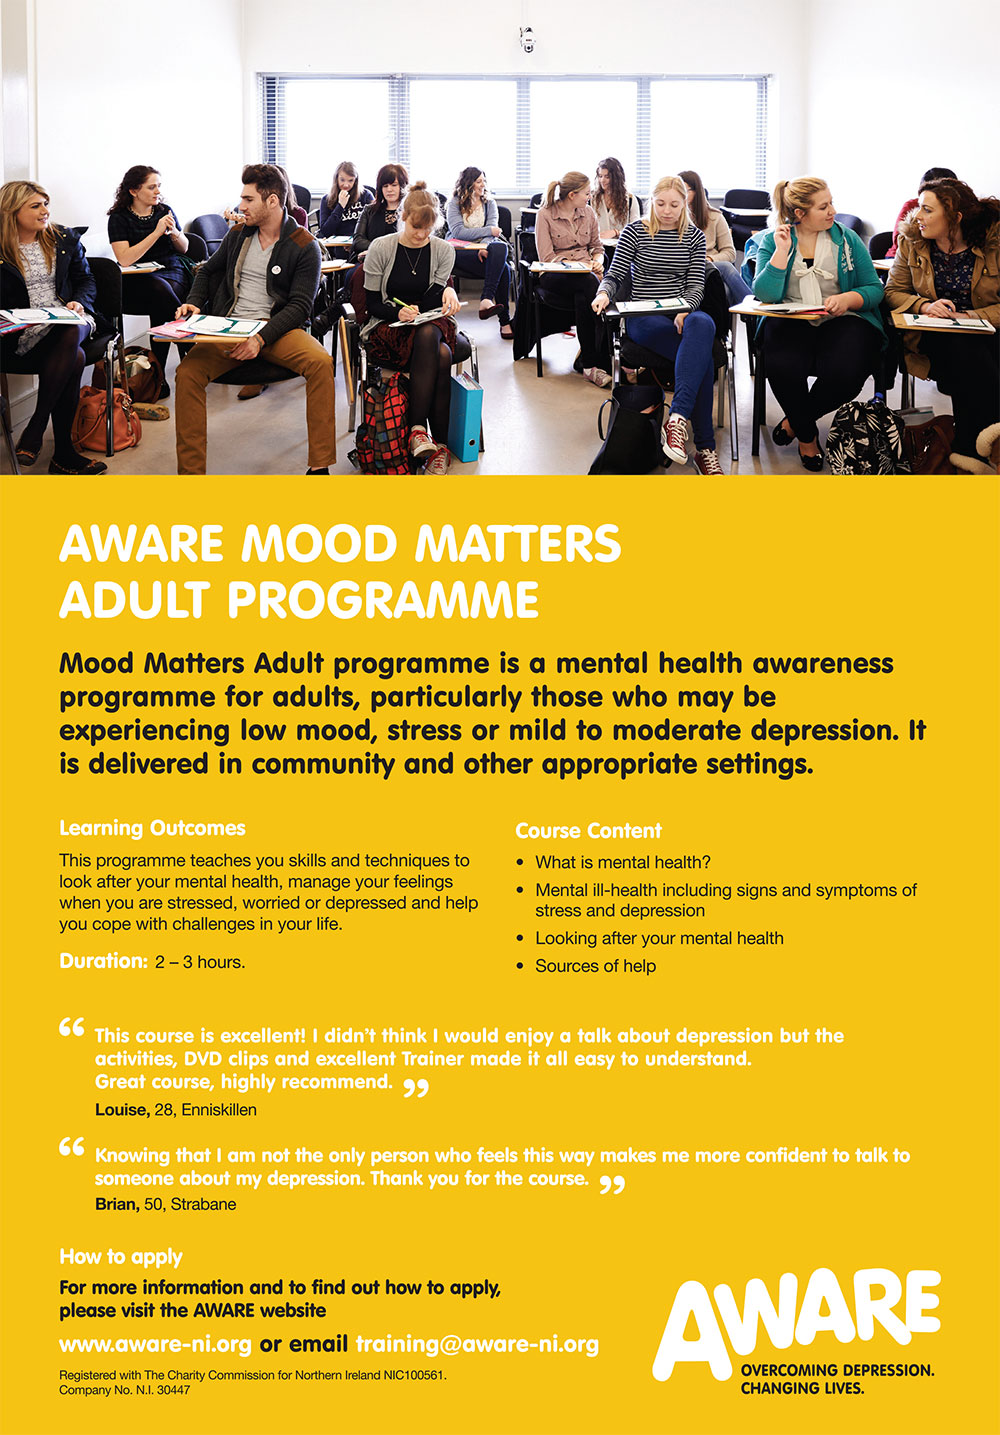 AWARE Mood Matters Adult Programme